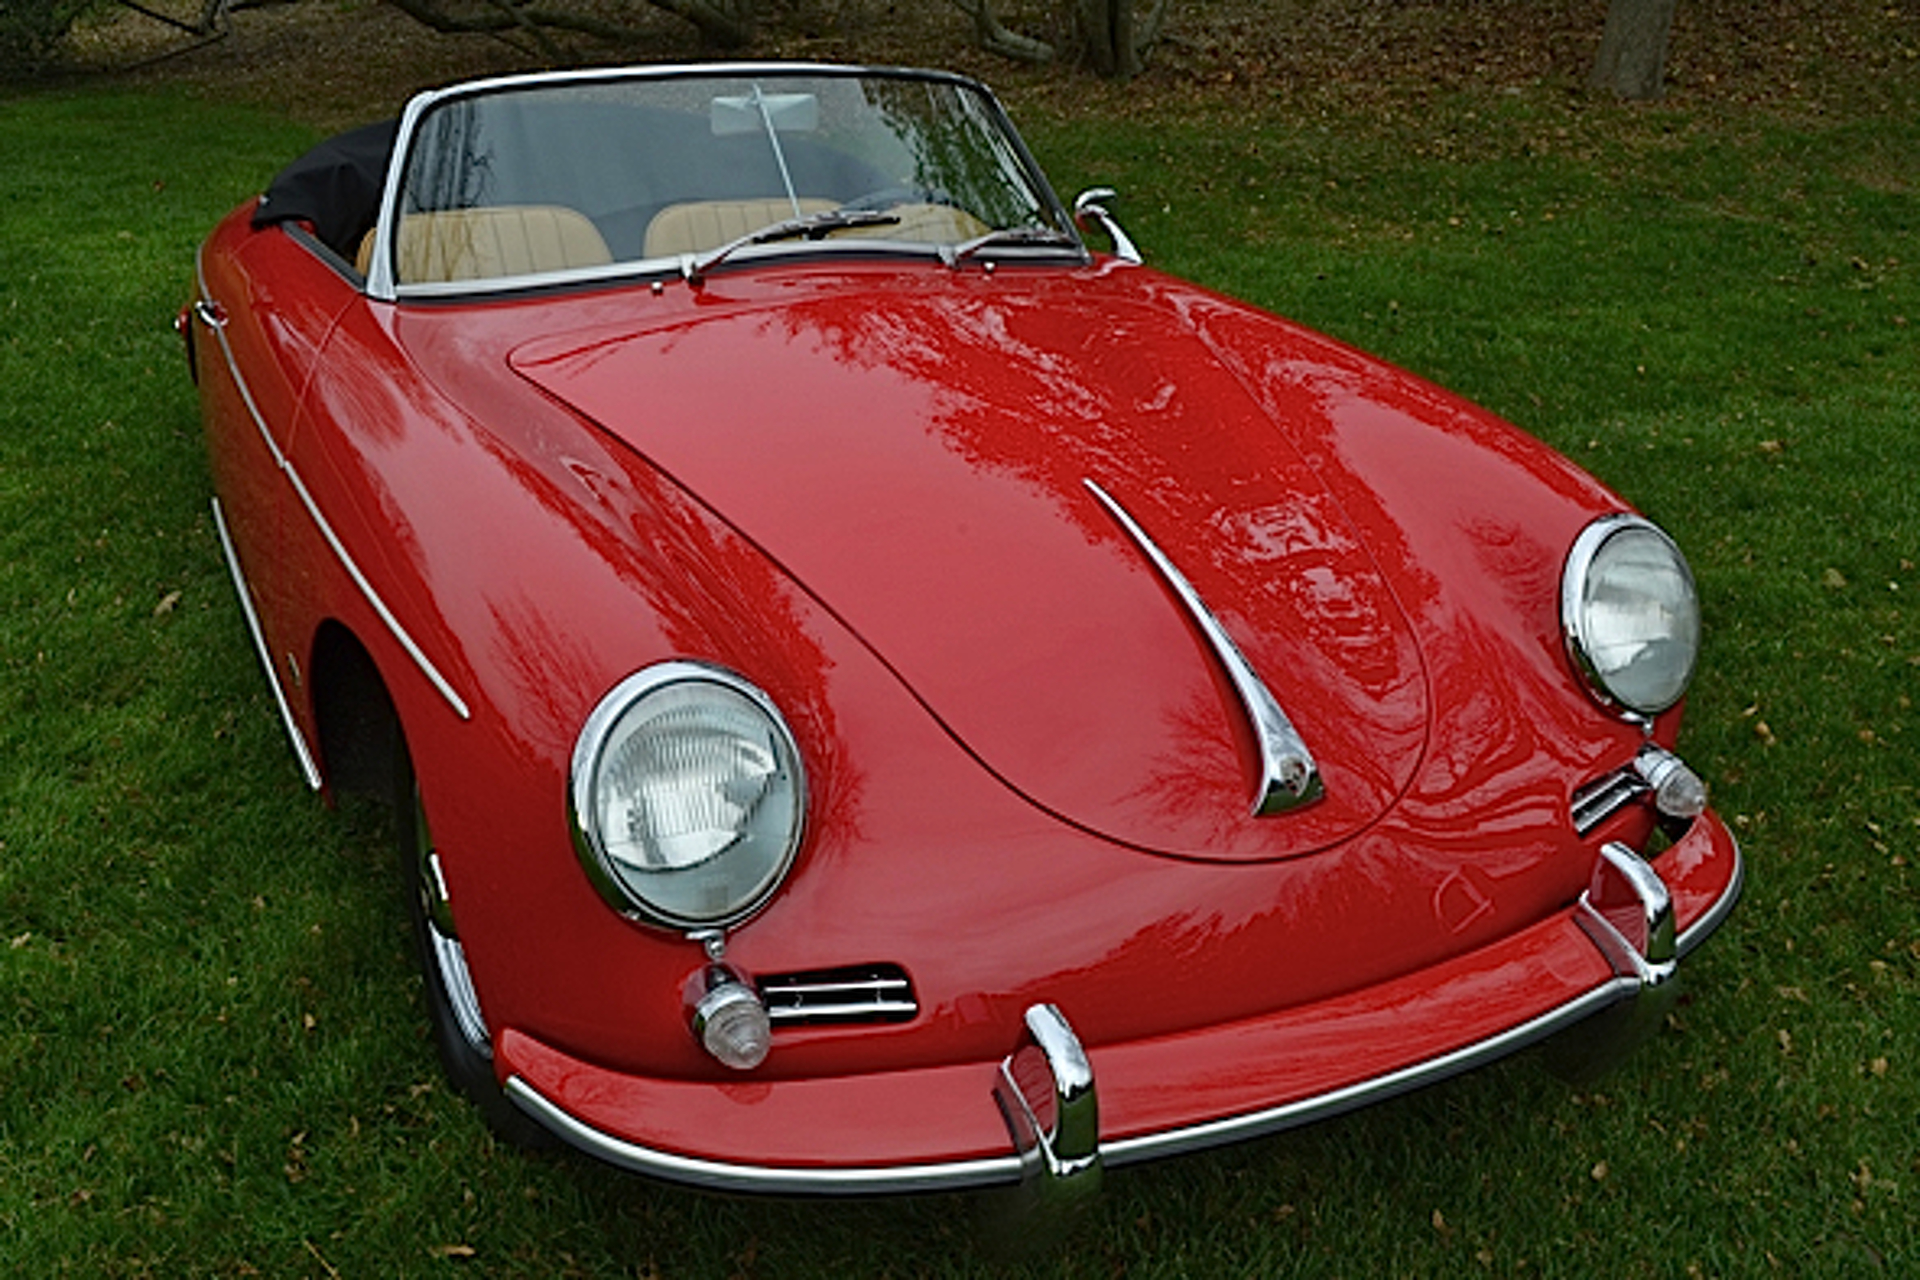 eBay Car of the Week: 1961 Porsche 356B Roadster